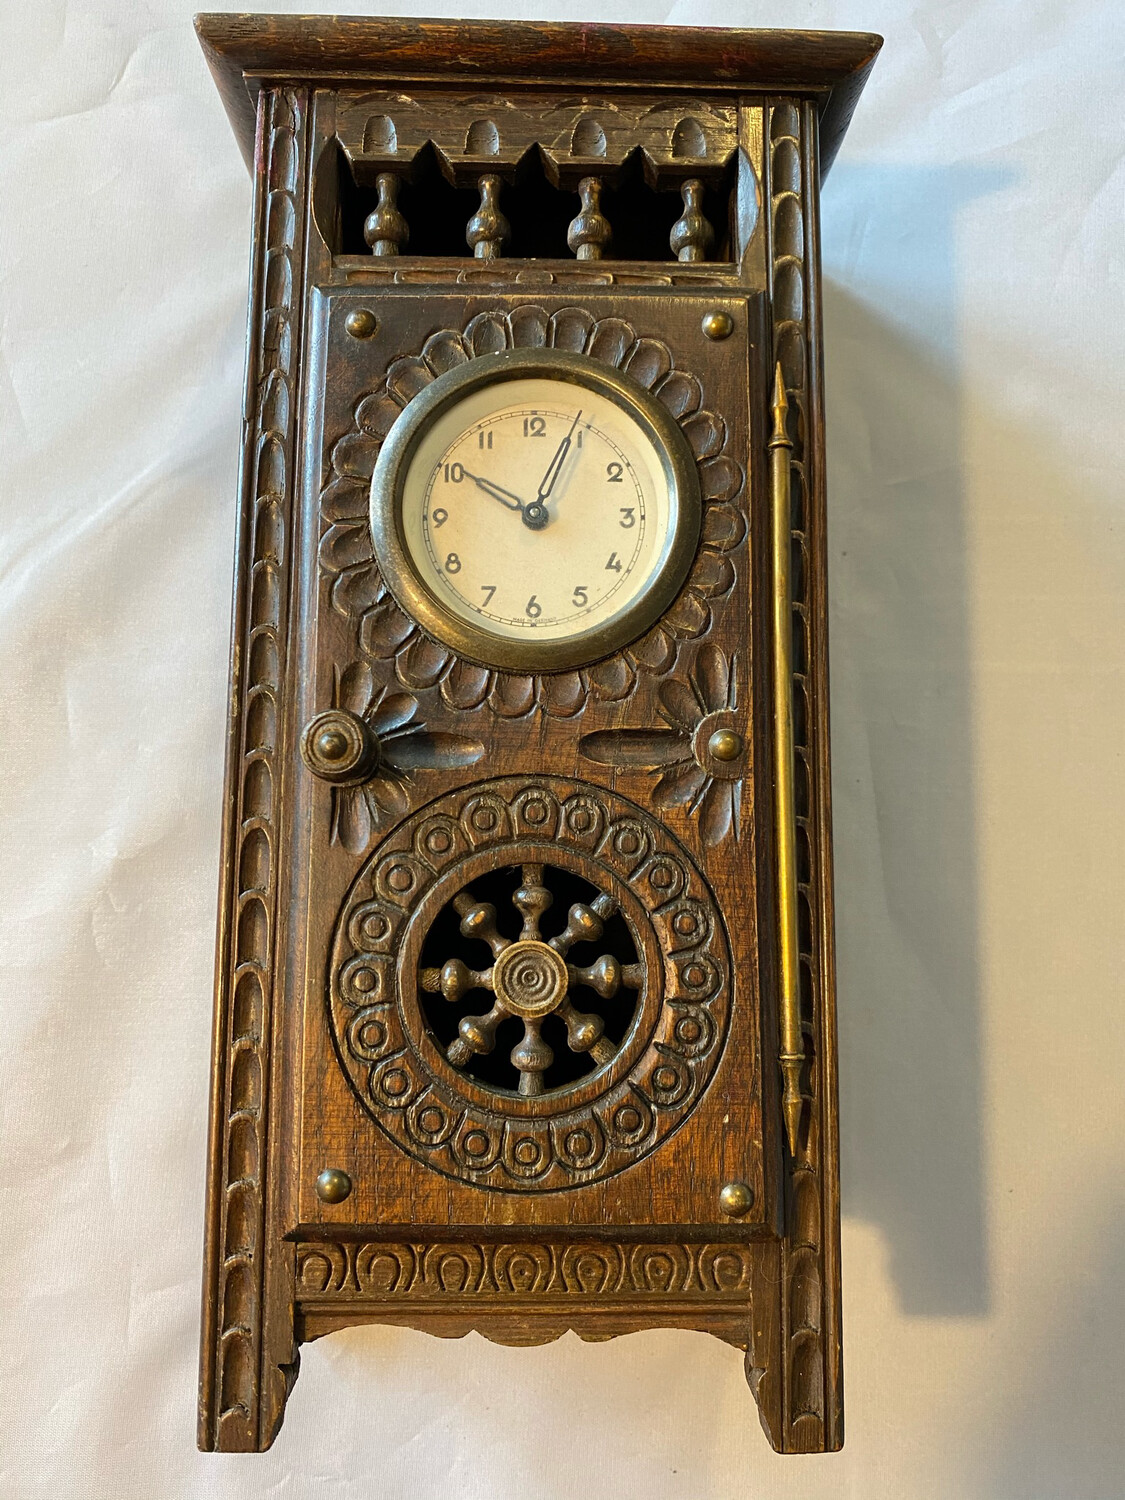 Mantle clock in very unusual style - German, possibly 1930's